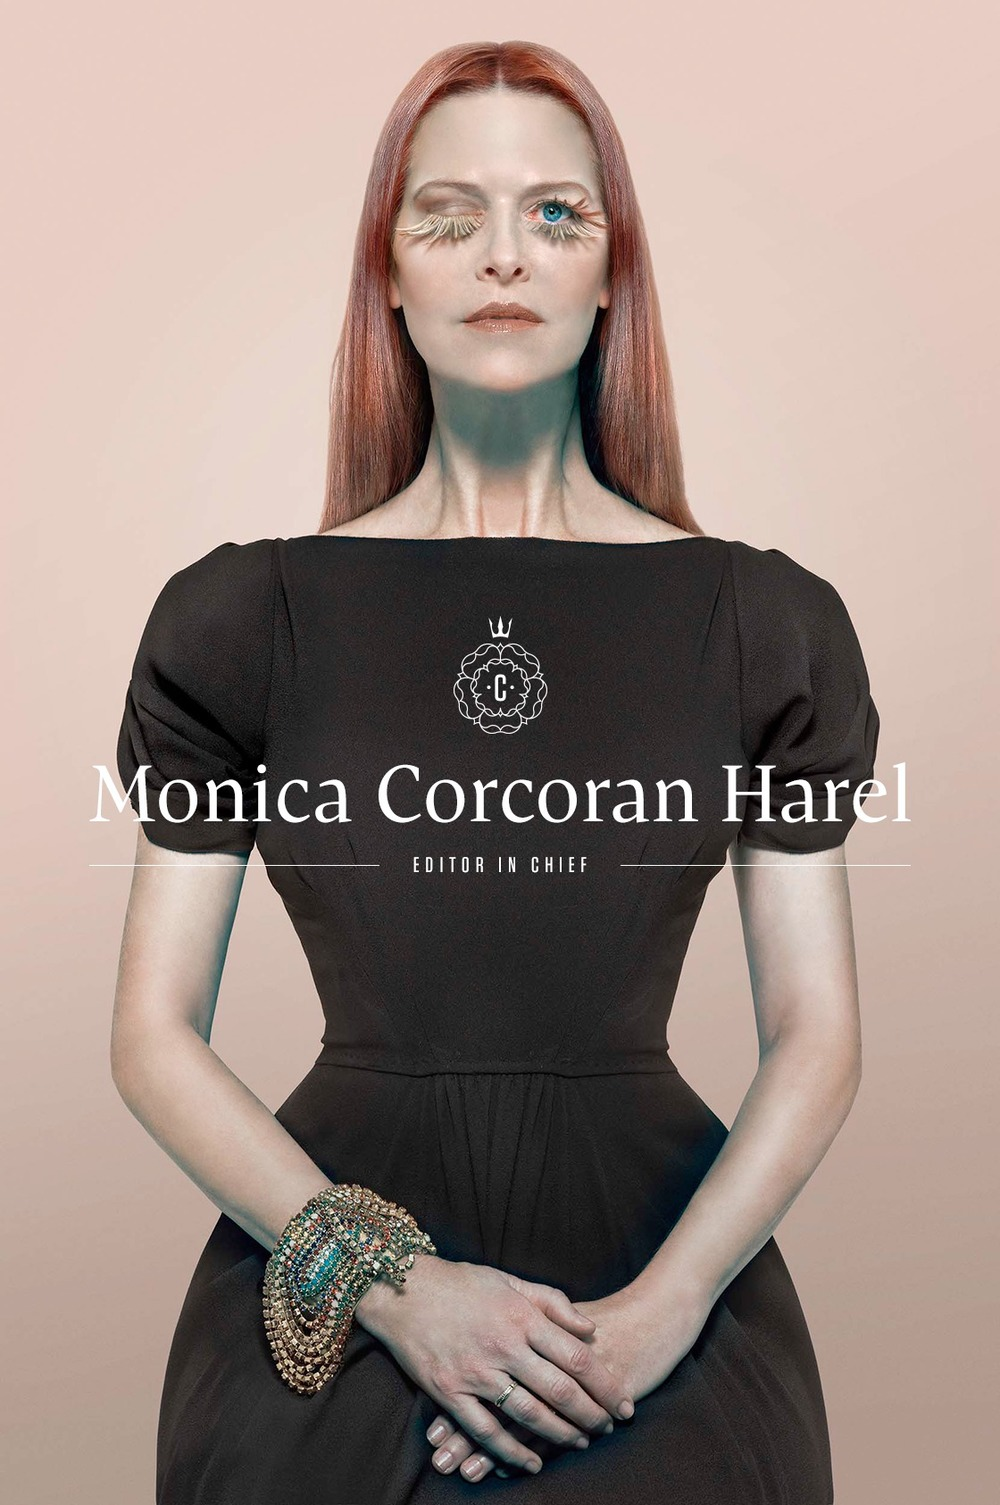 Monica Corcoran Harel for Capitol Couture